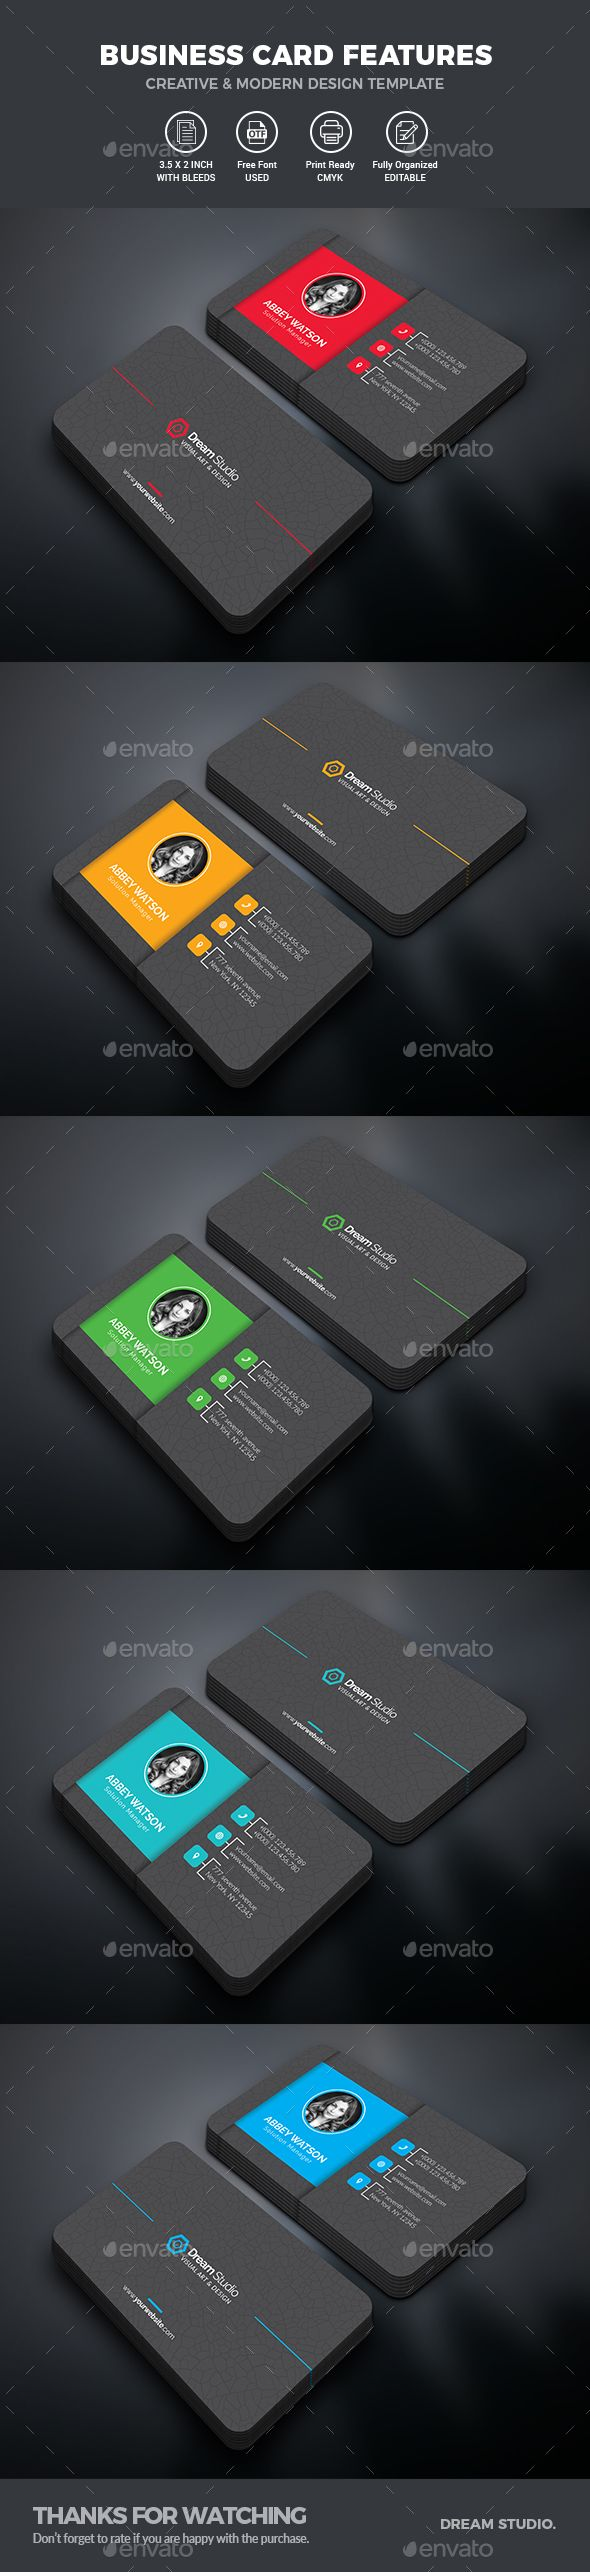 Business Cards - #Business #Cards Print Templates